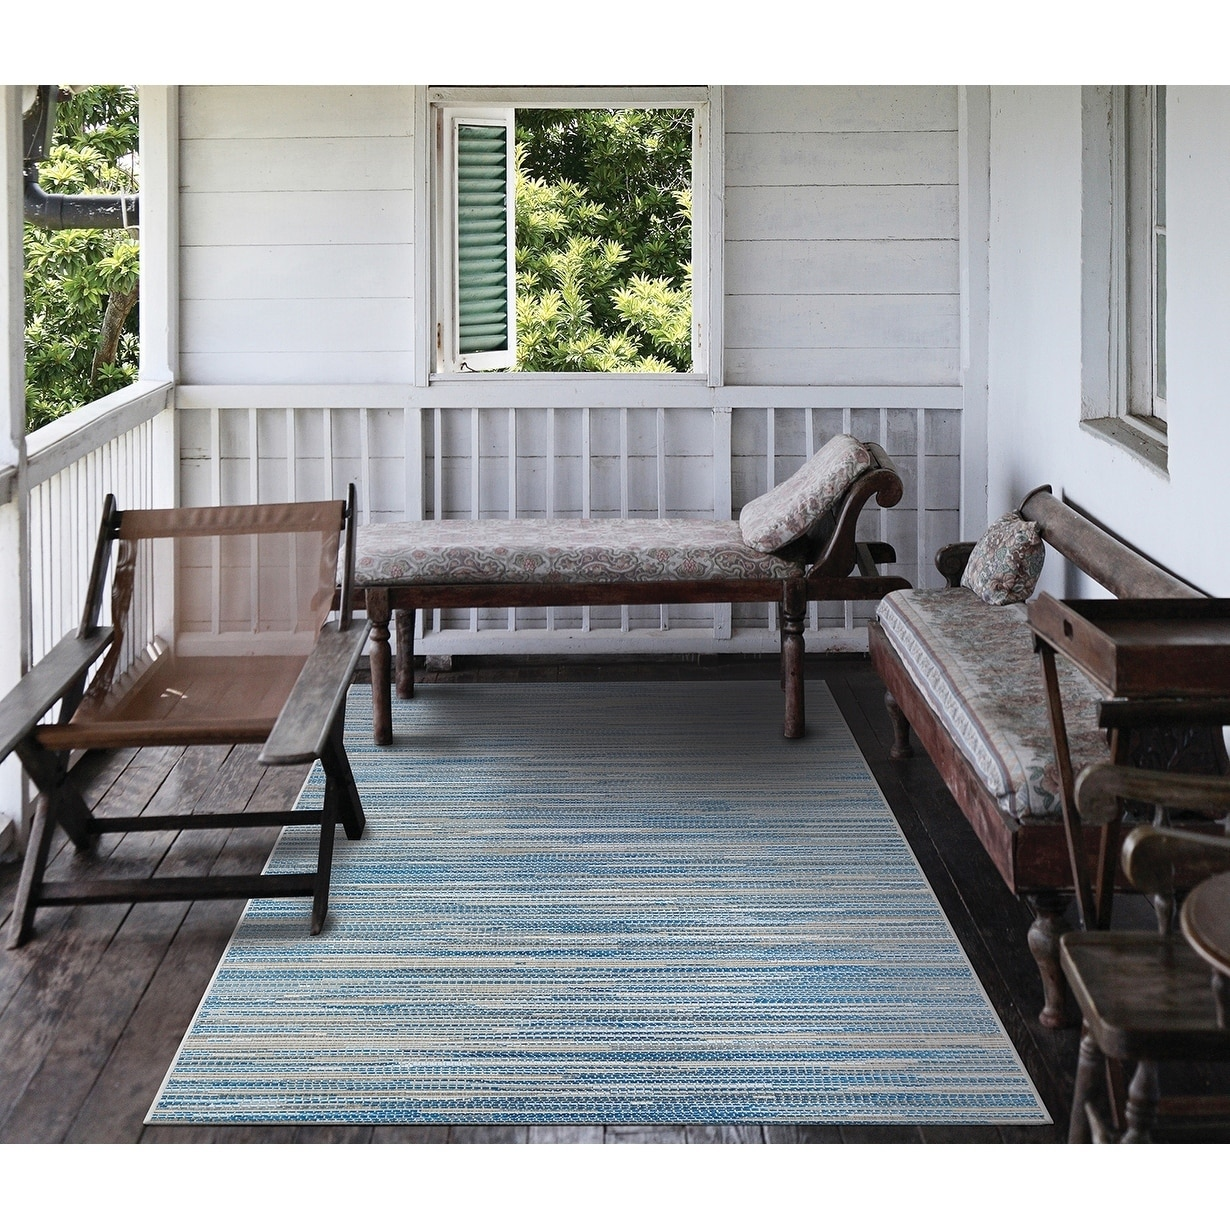 Carriage House Stria Blue-Champagne Indoor/Outdoor Area Rug - 510 x 92 (510 x 92 - Blue/Champagne)